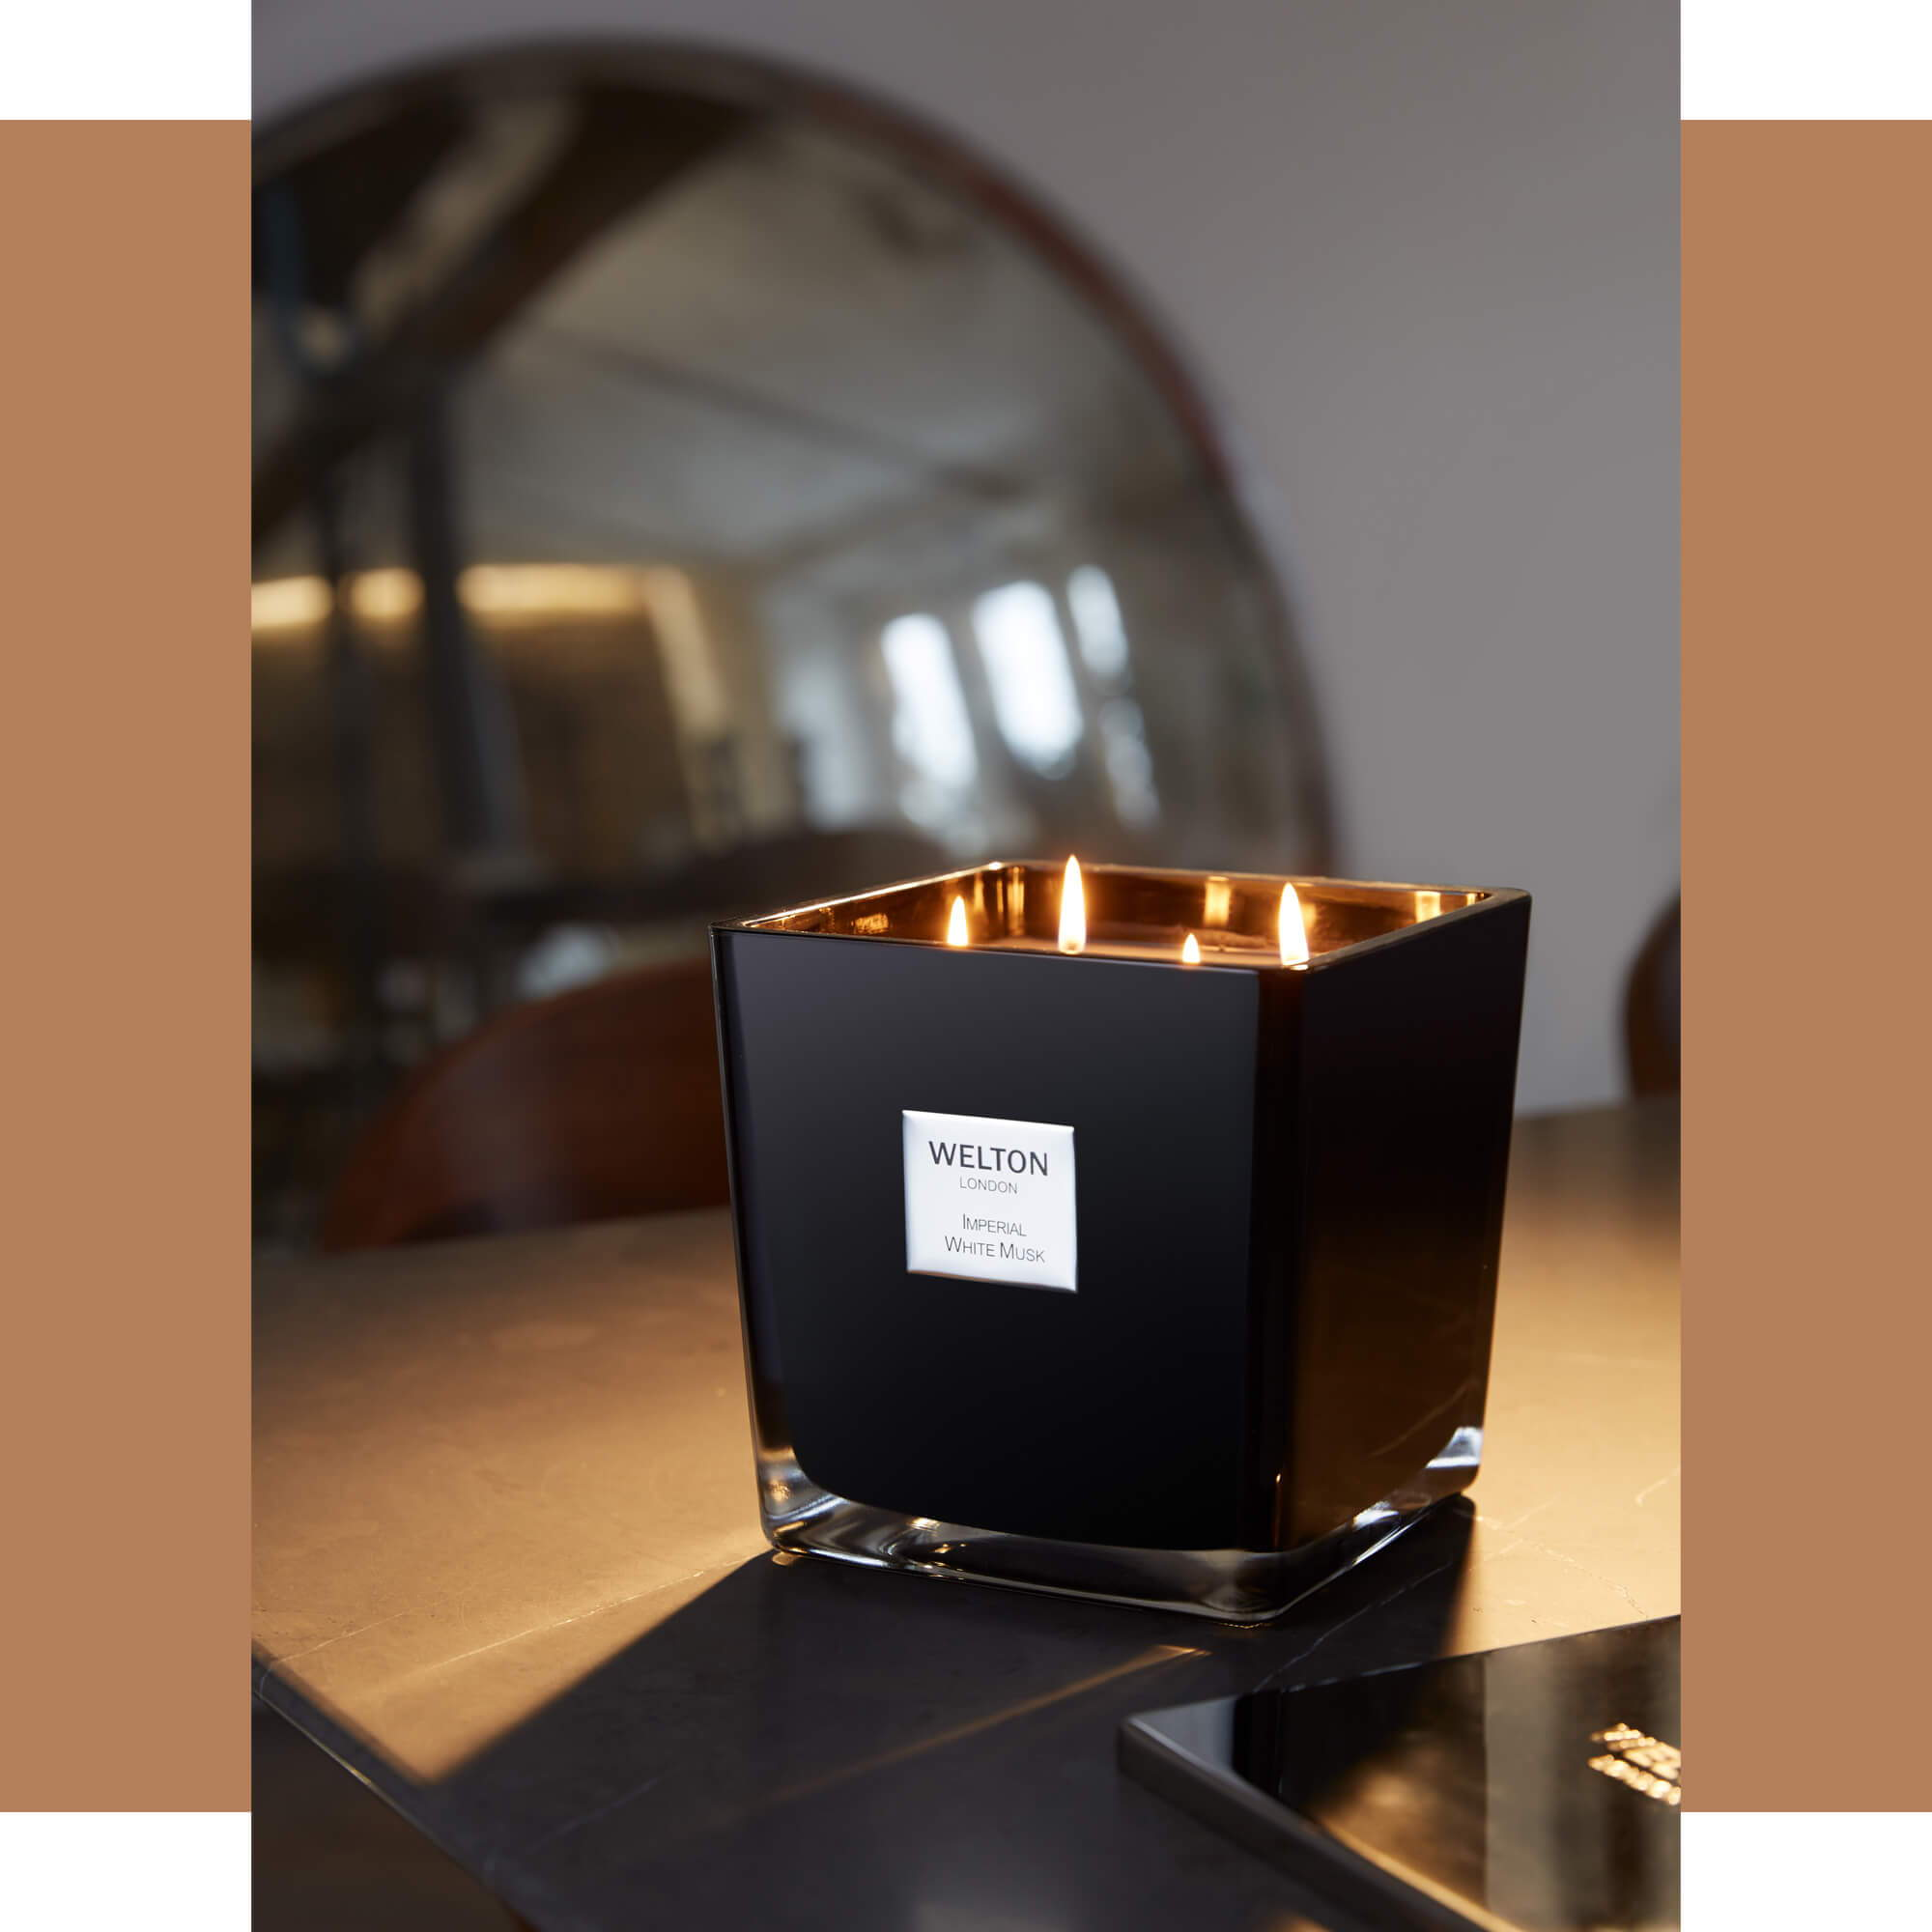 onyx collection luxury scented candle urban contemporary cubic shape design imperial white musk scent high quality